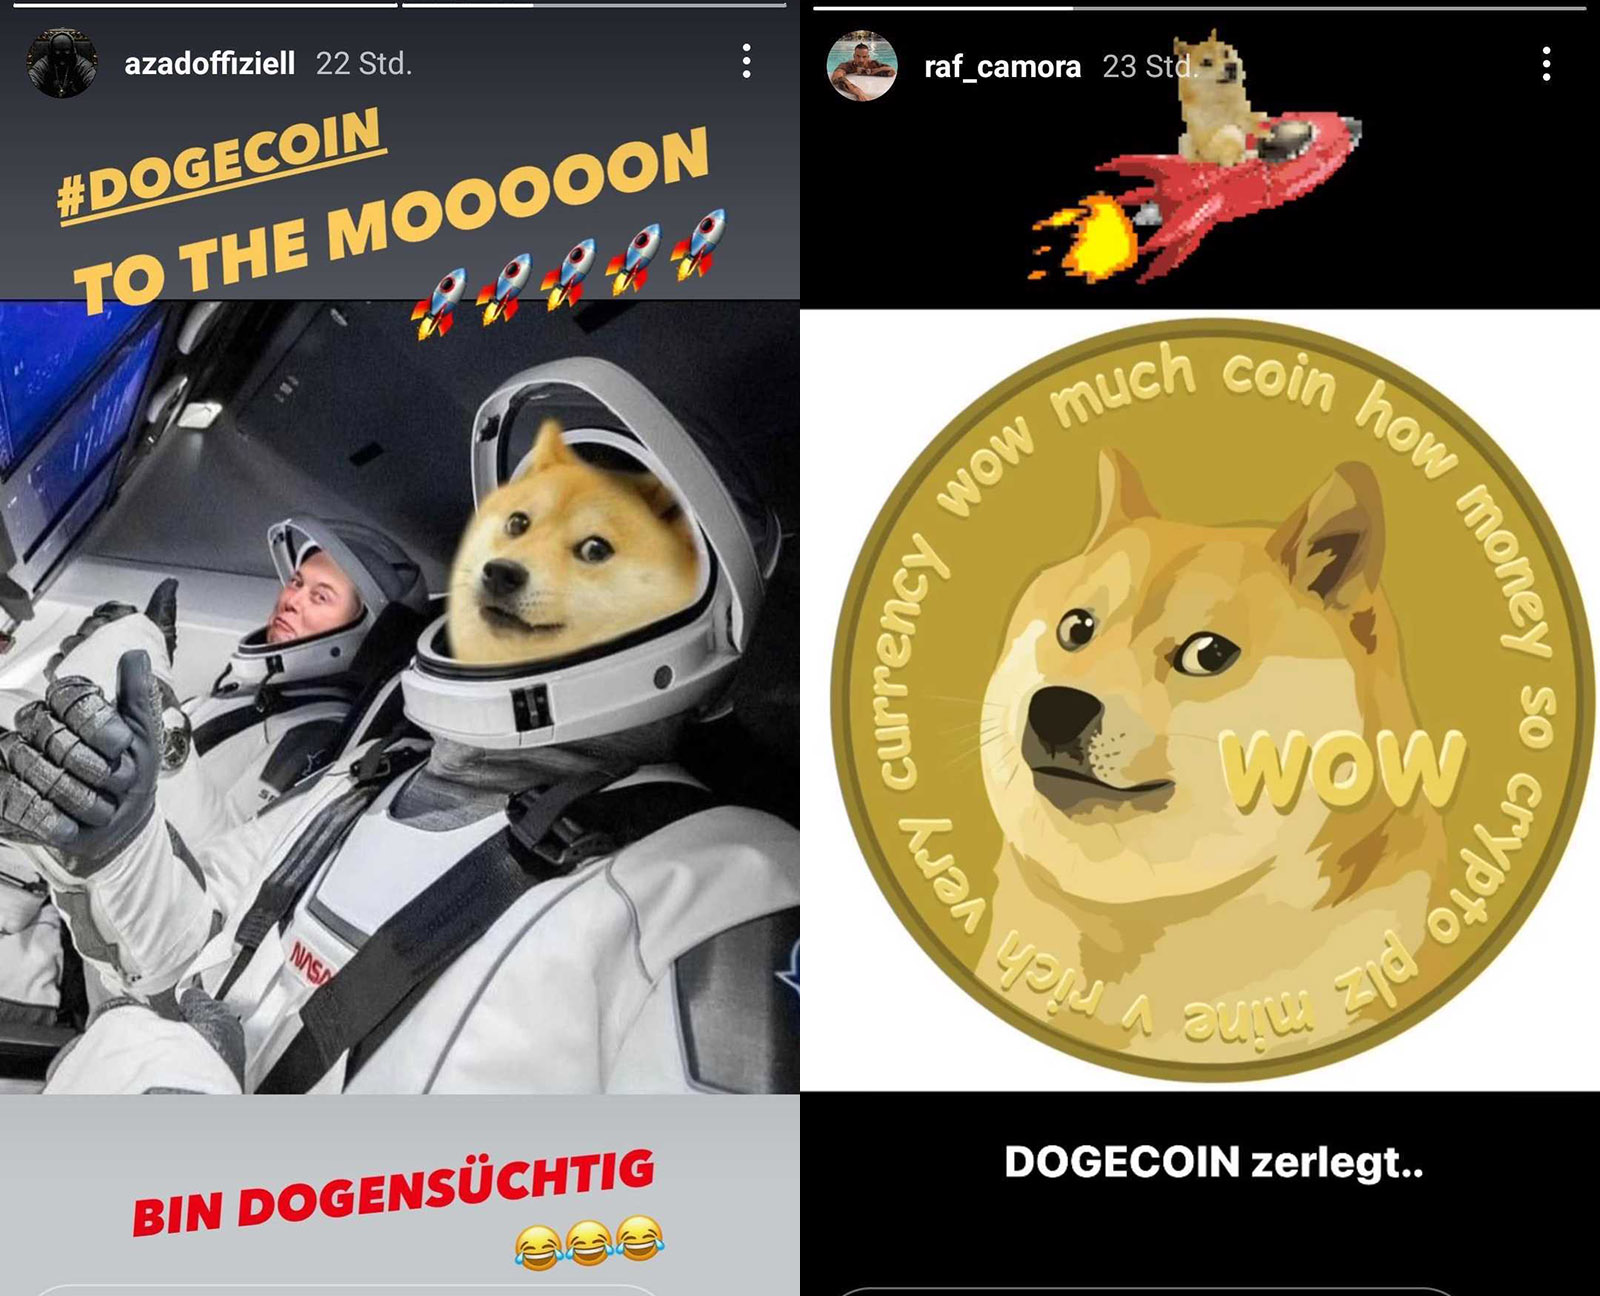 Insta Stories: RAF Camora & Azad mit DogeCoin-Investitionen?